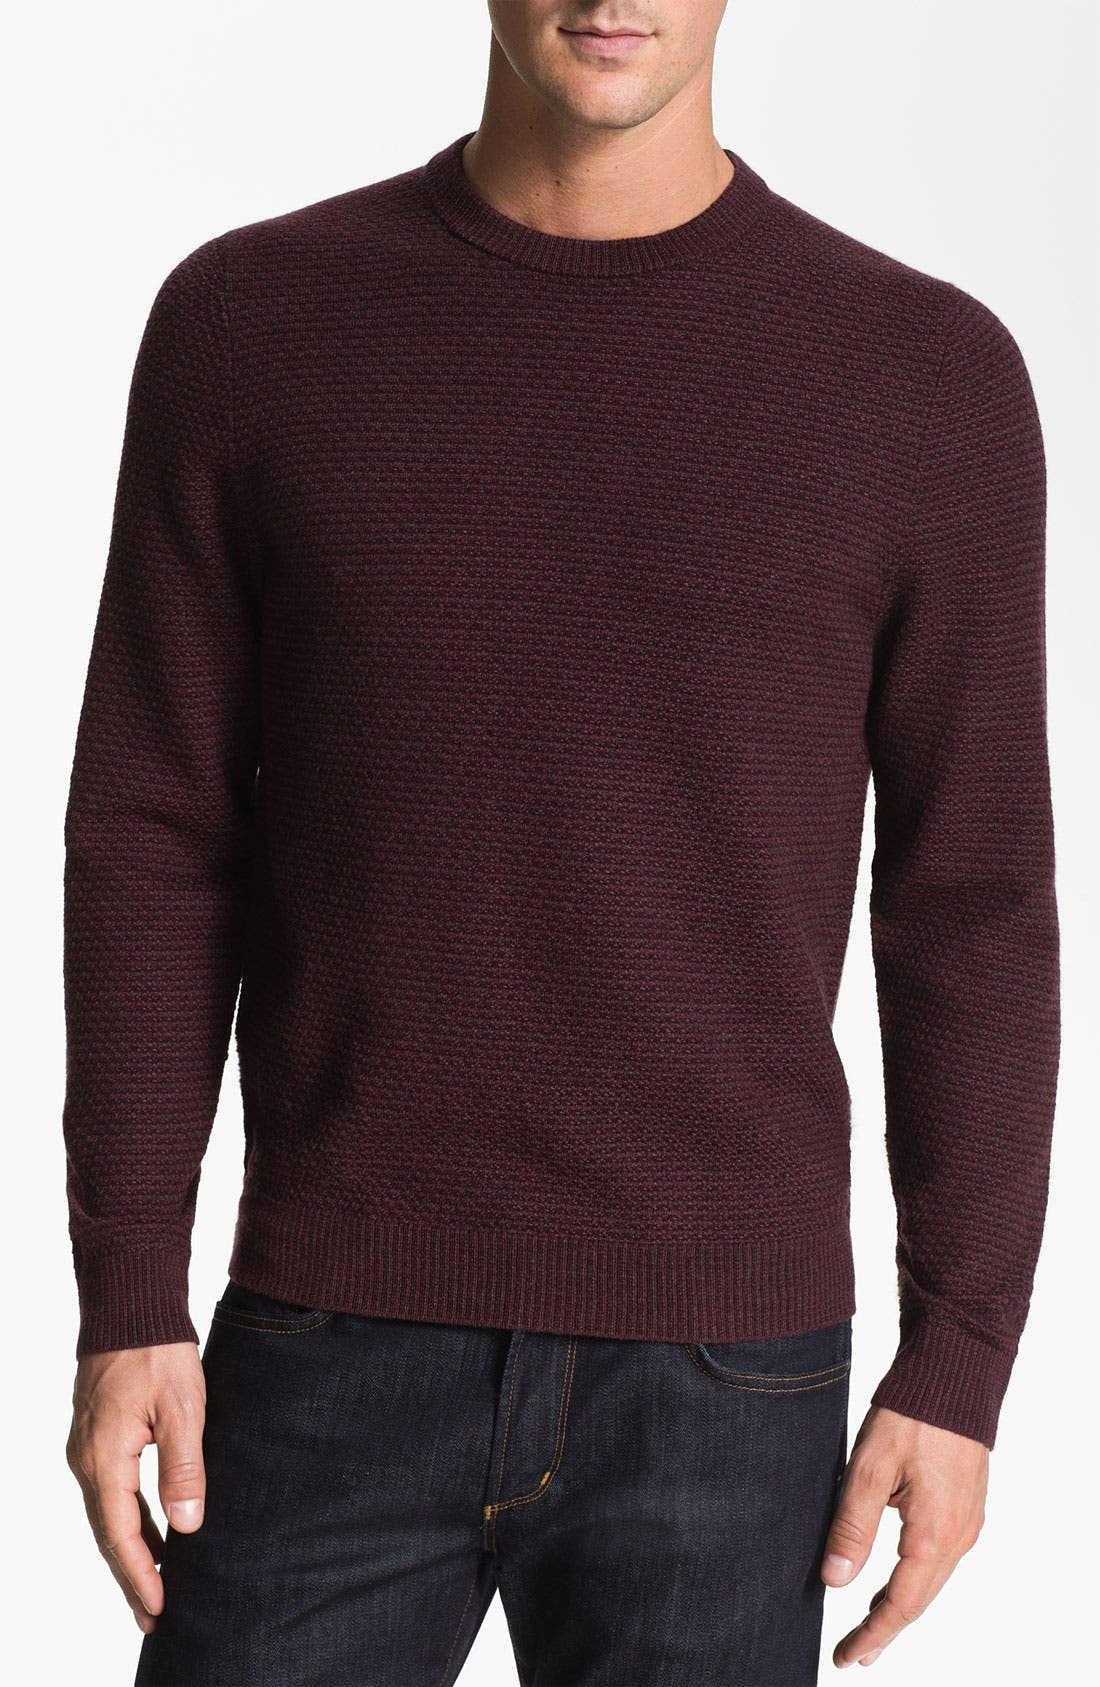 Alternate Image 1 Selected - Nordstrom Merino Wool Crewneck Sweater